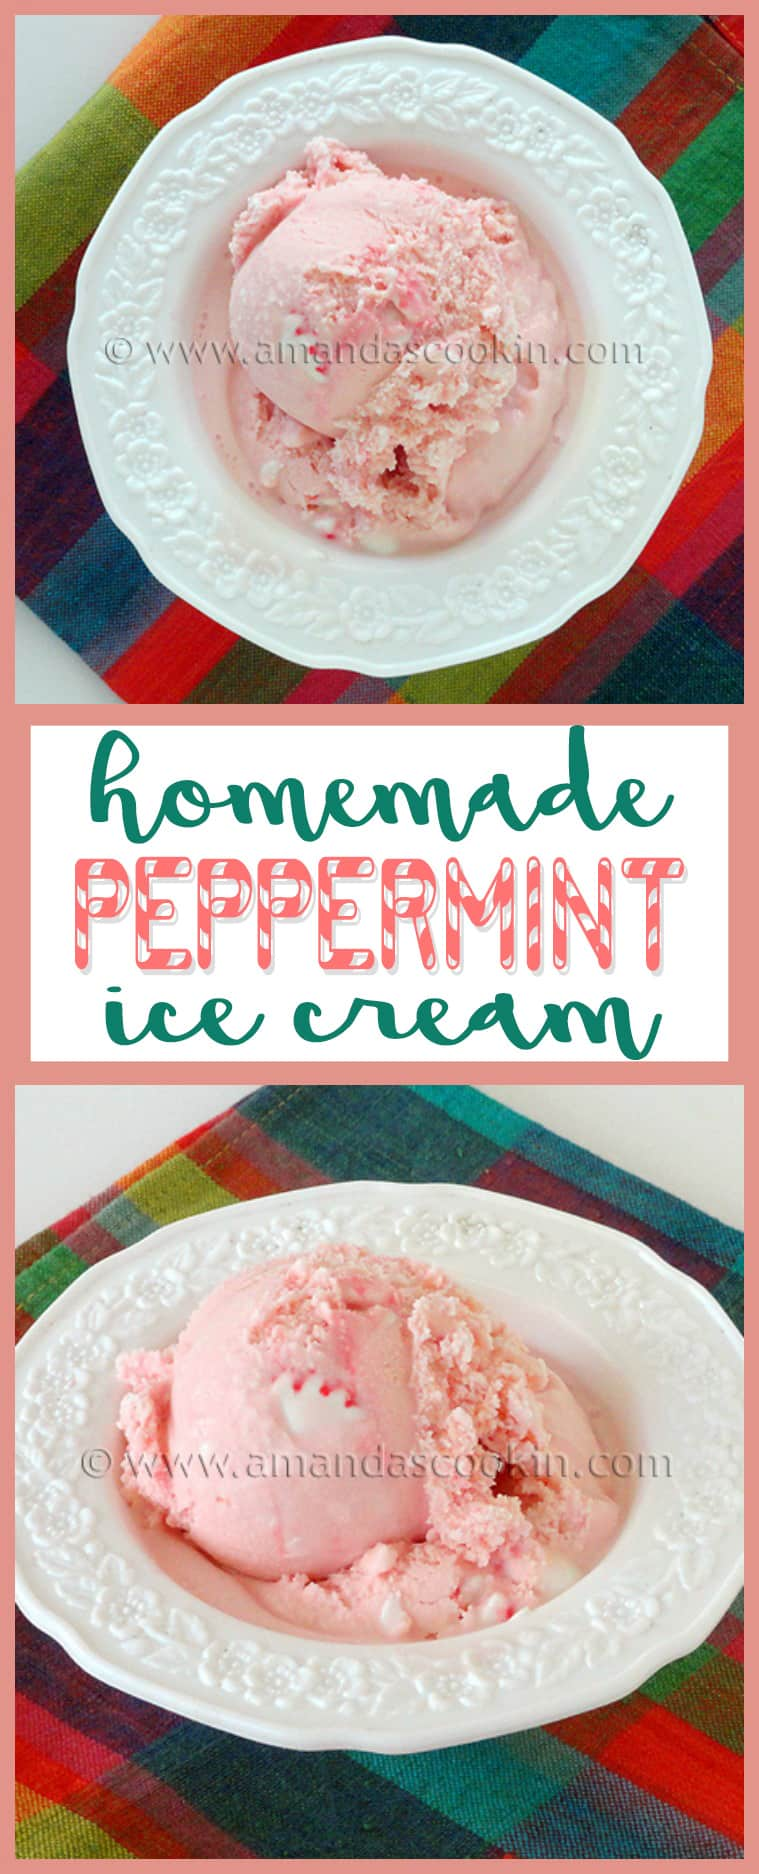 Delicious homemade pink peppermint ice cream, perfect for the holidays or any time of the year!